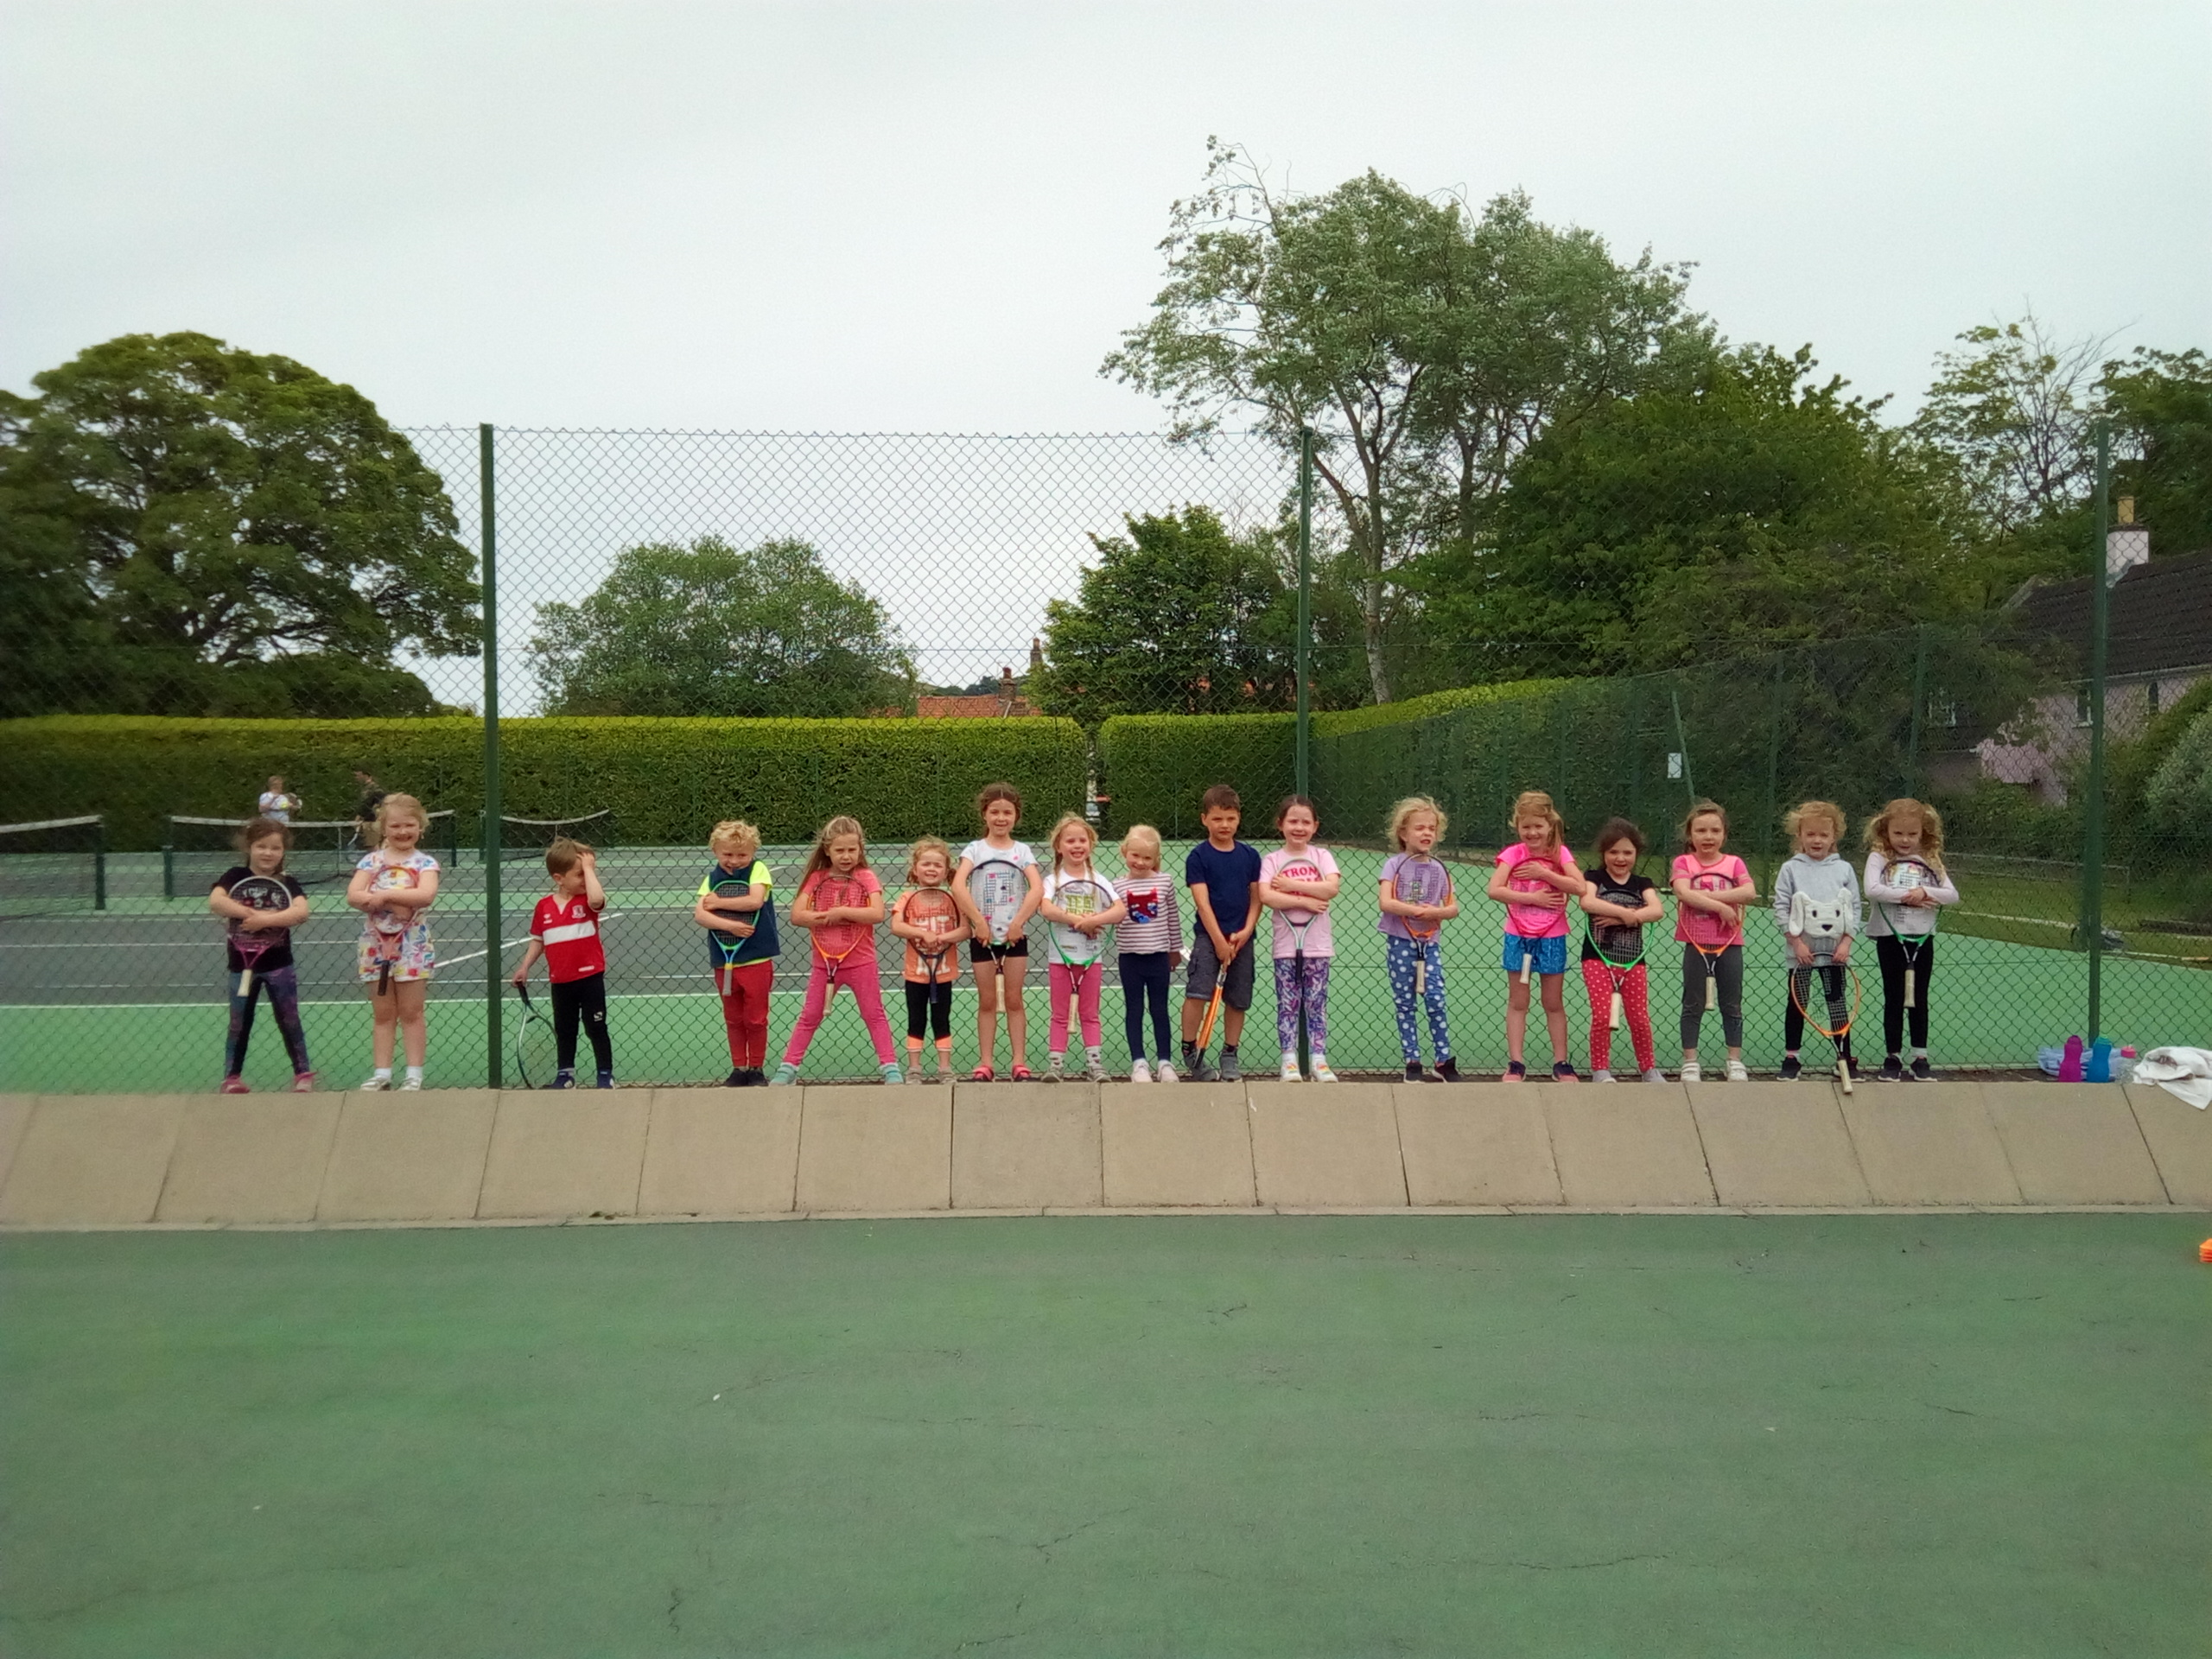 fit-kidz-great-ayton-tennis-club-may-2019